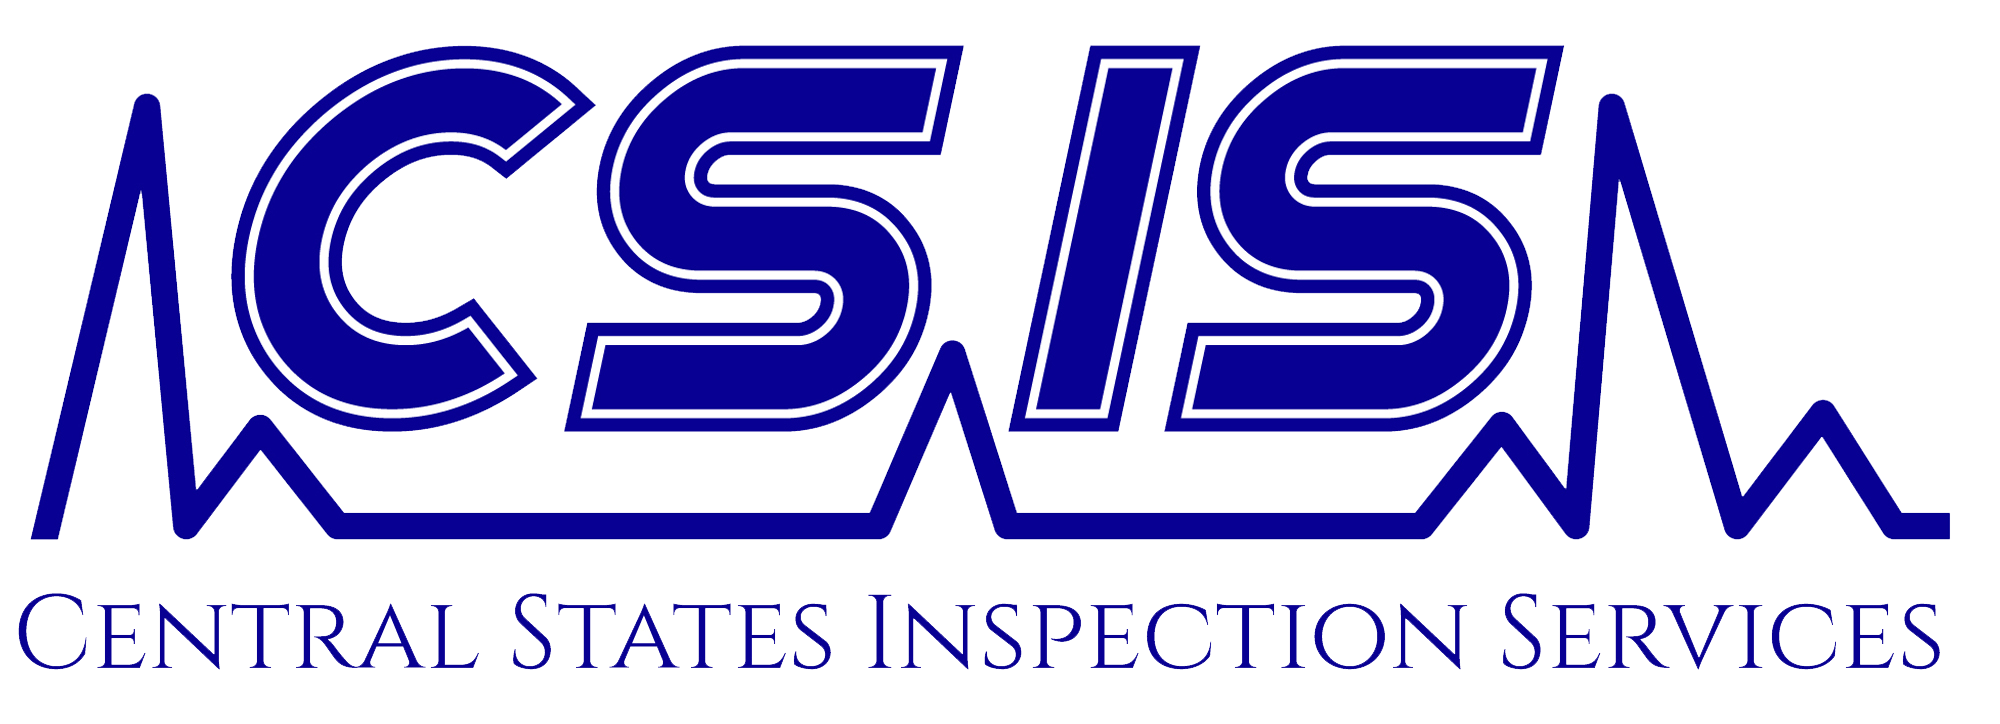 Central States Inspection Services Logo